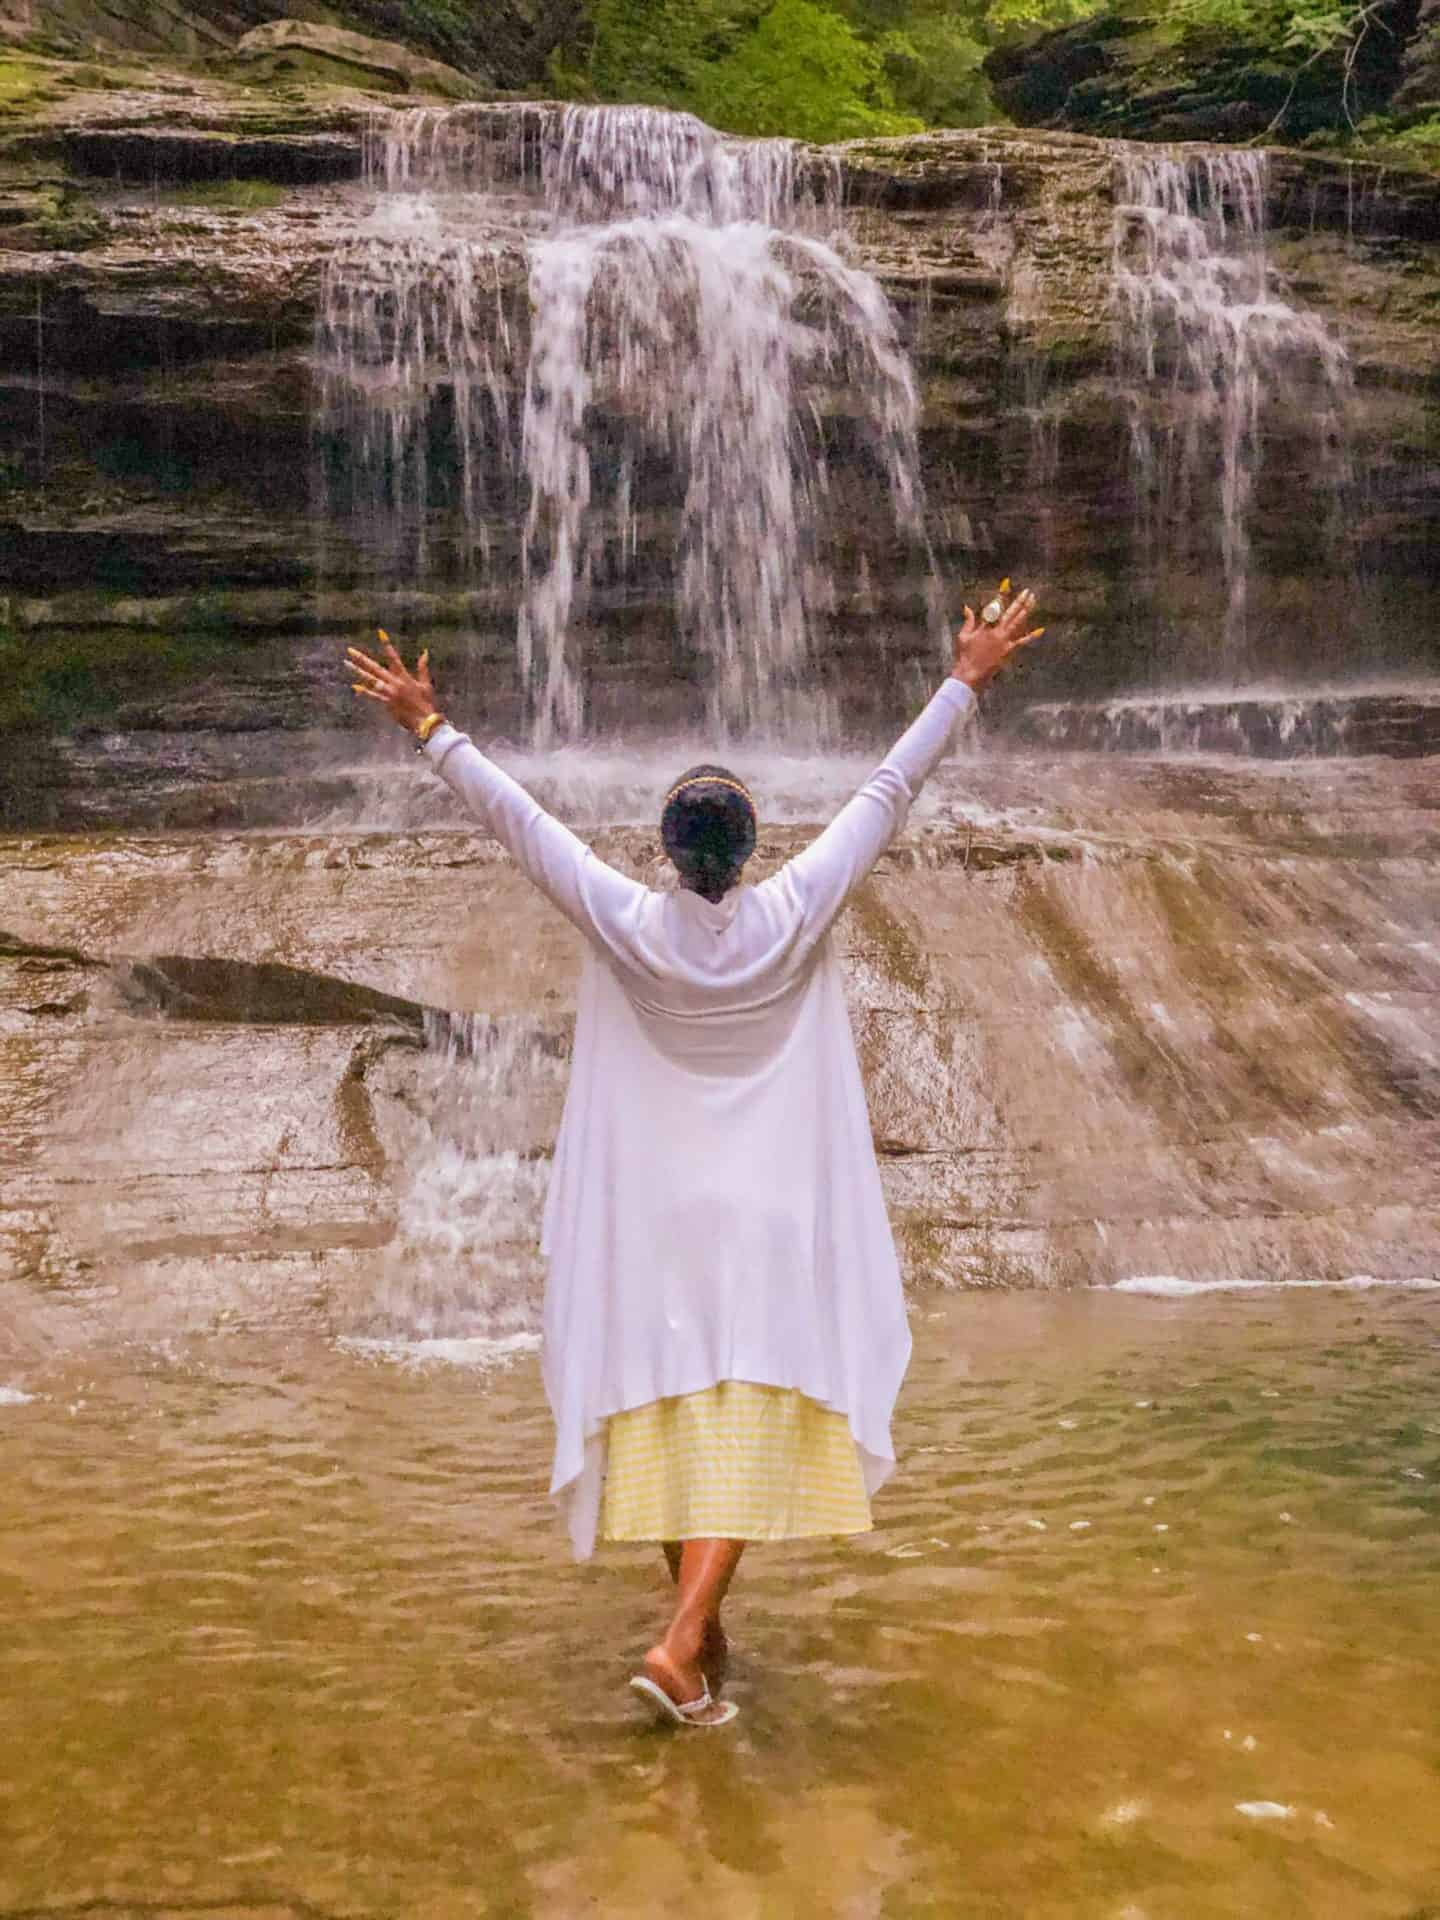 Shaunda Necole- Chasing Finger Lakes Waterfalls - Buttermilk Falls National Park Ithaca NY- Experiences are the luxuries of life